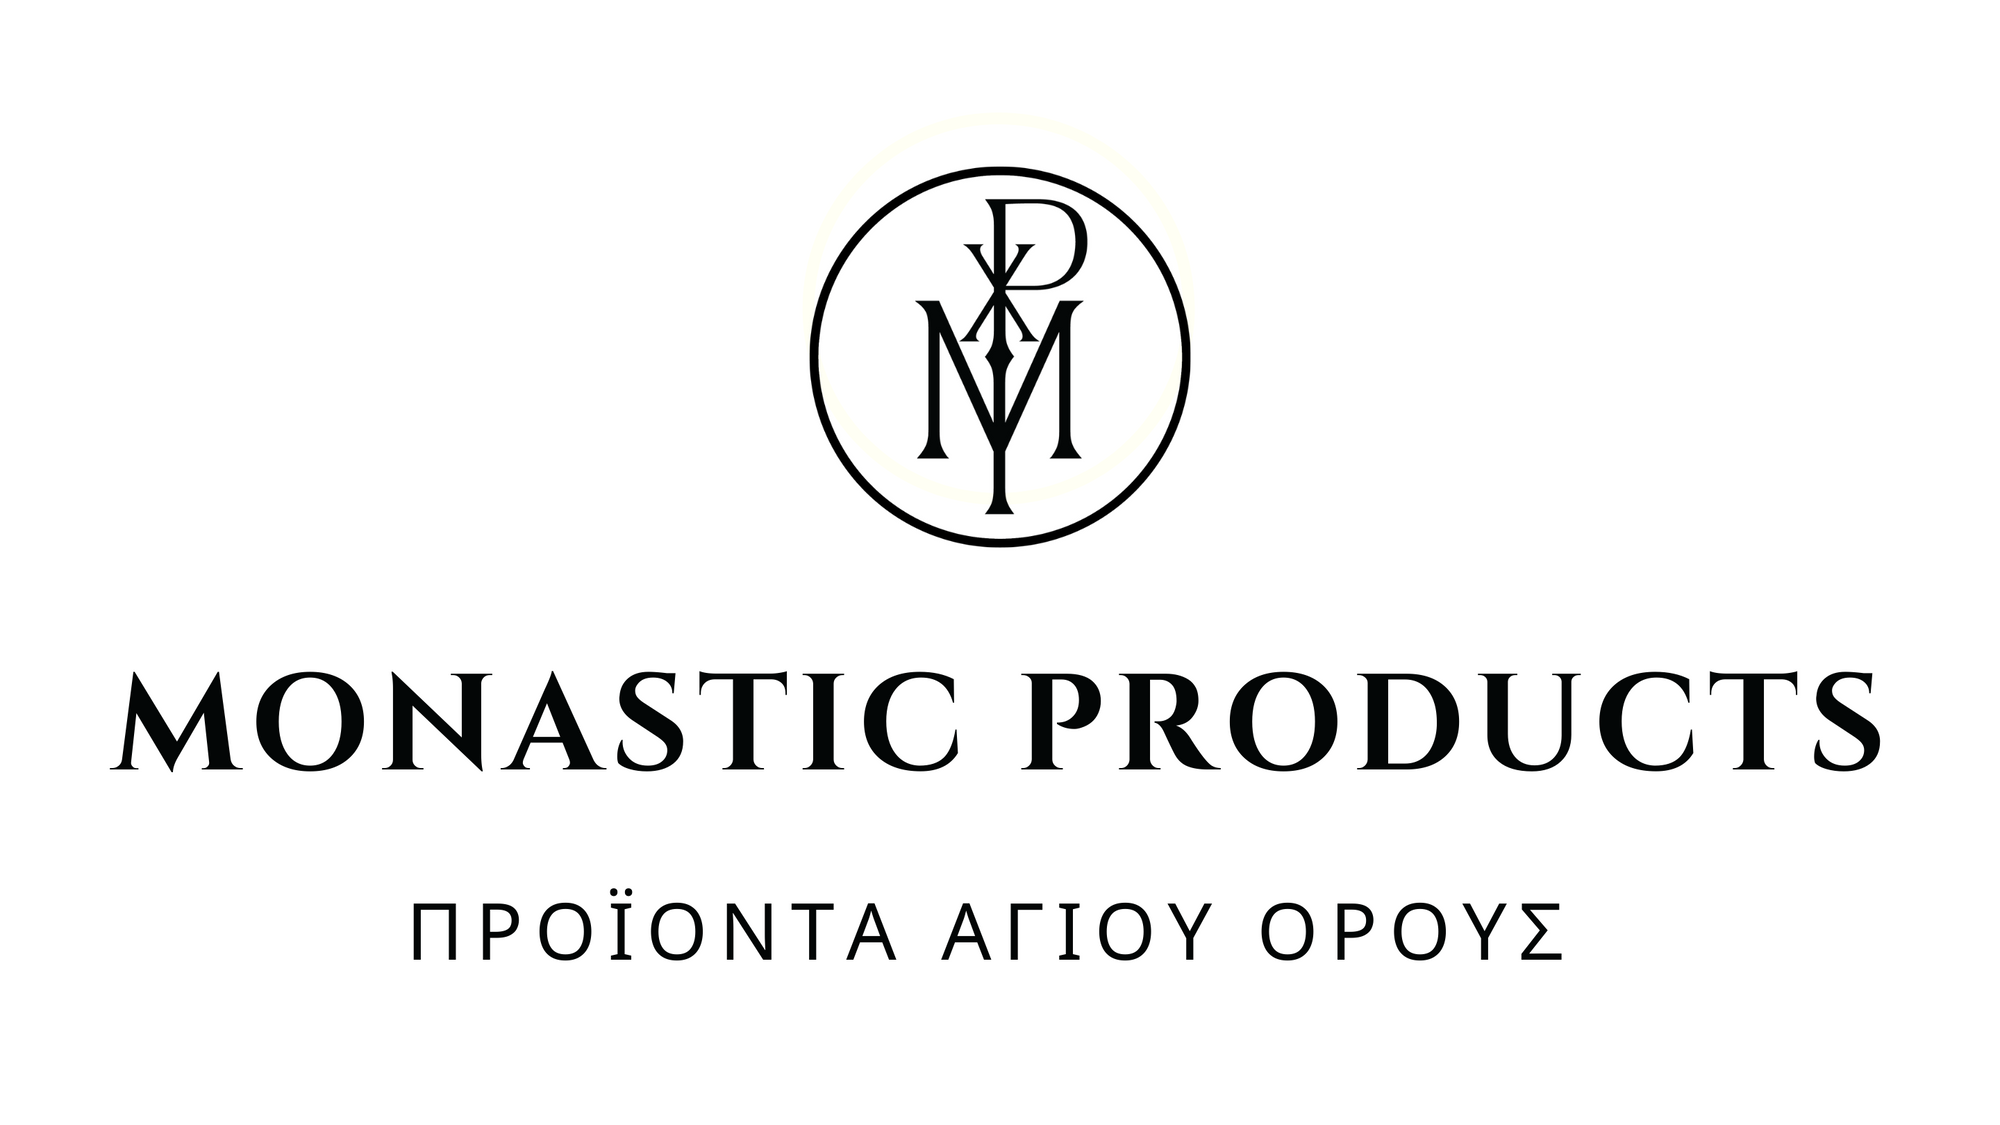 Monastic Products